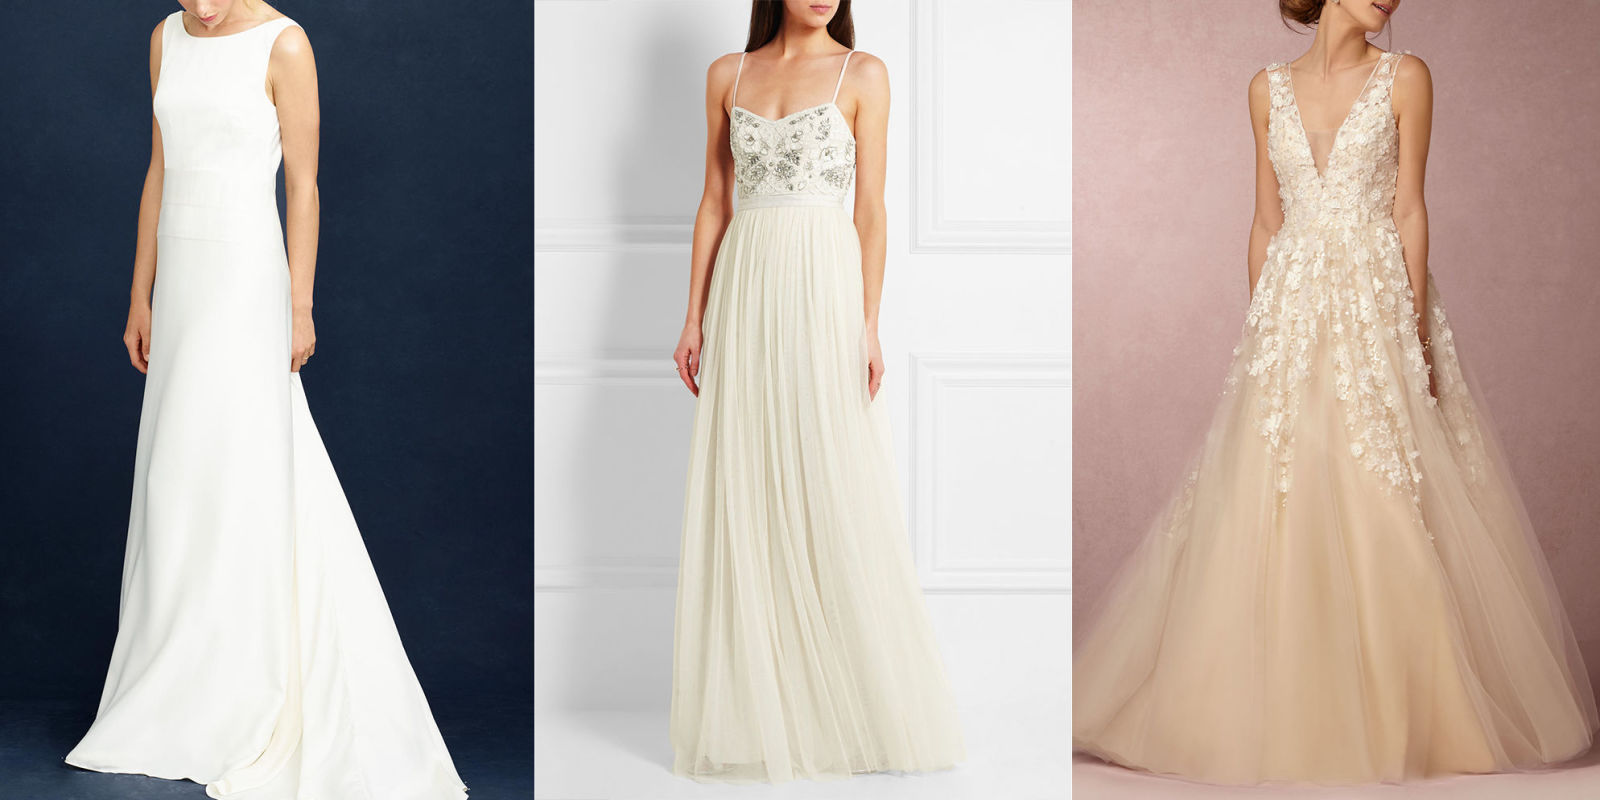 10 Best Winter Wedding Dresses For 2017